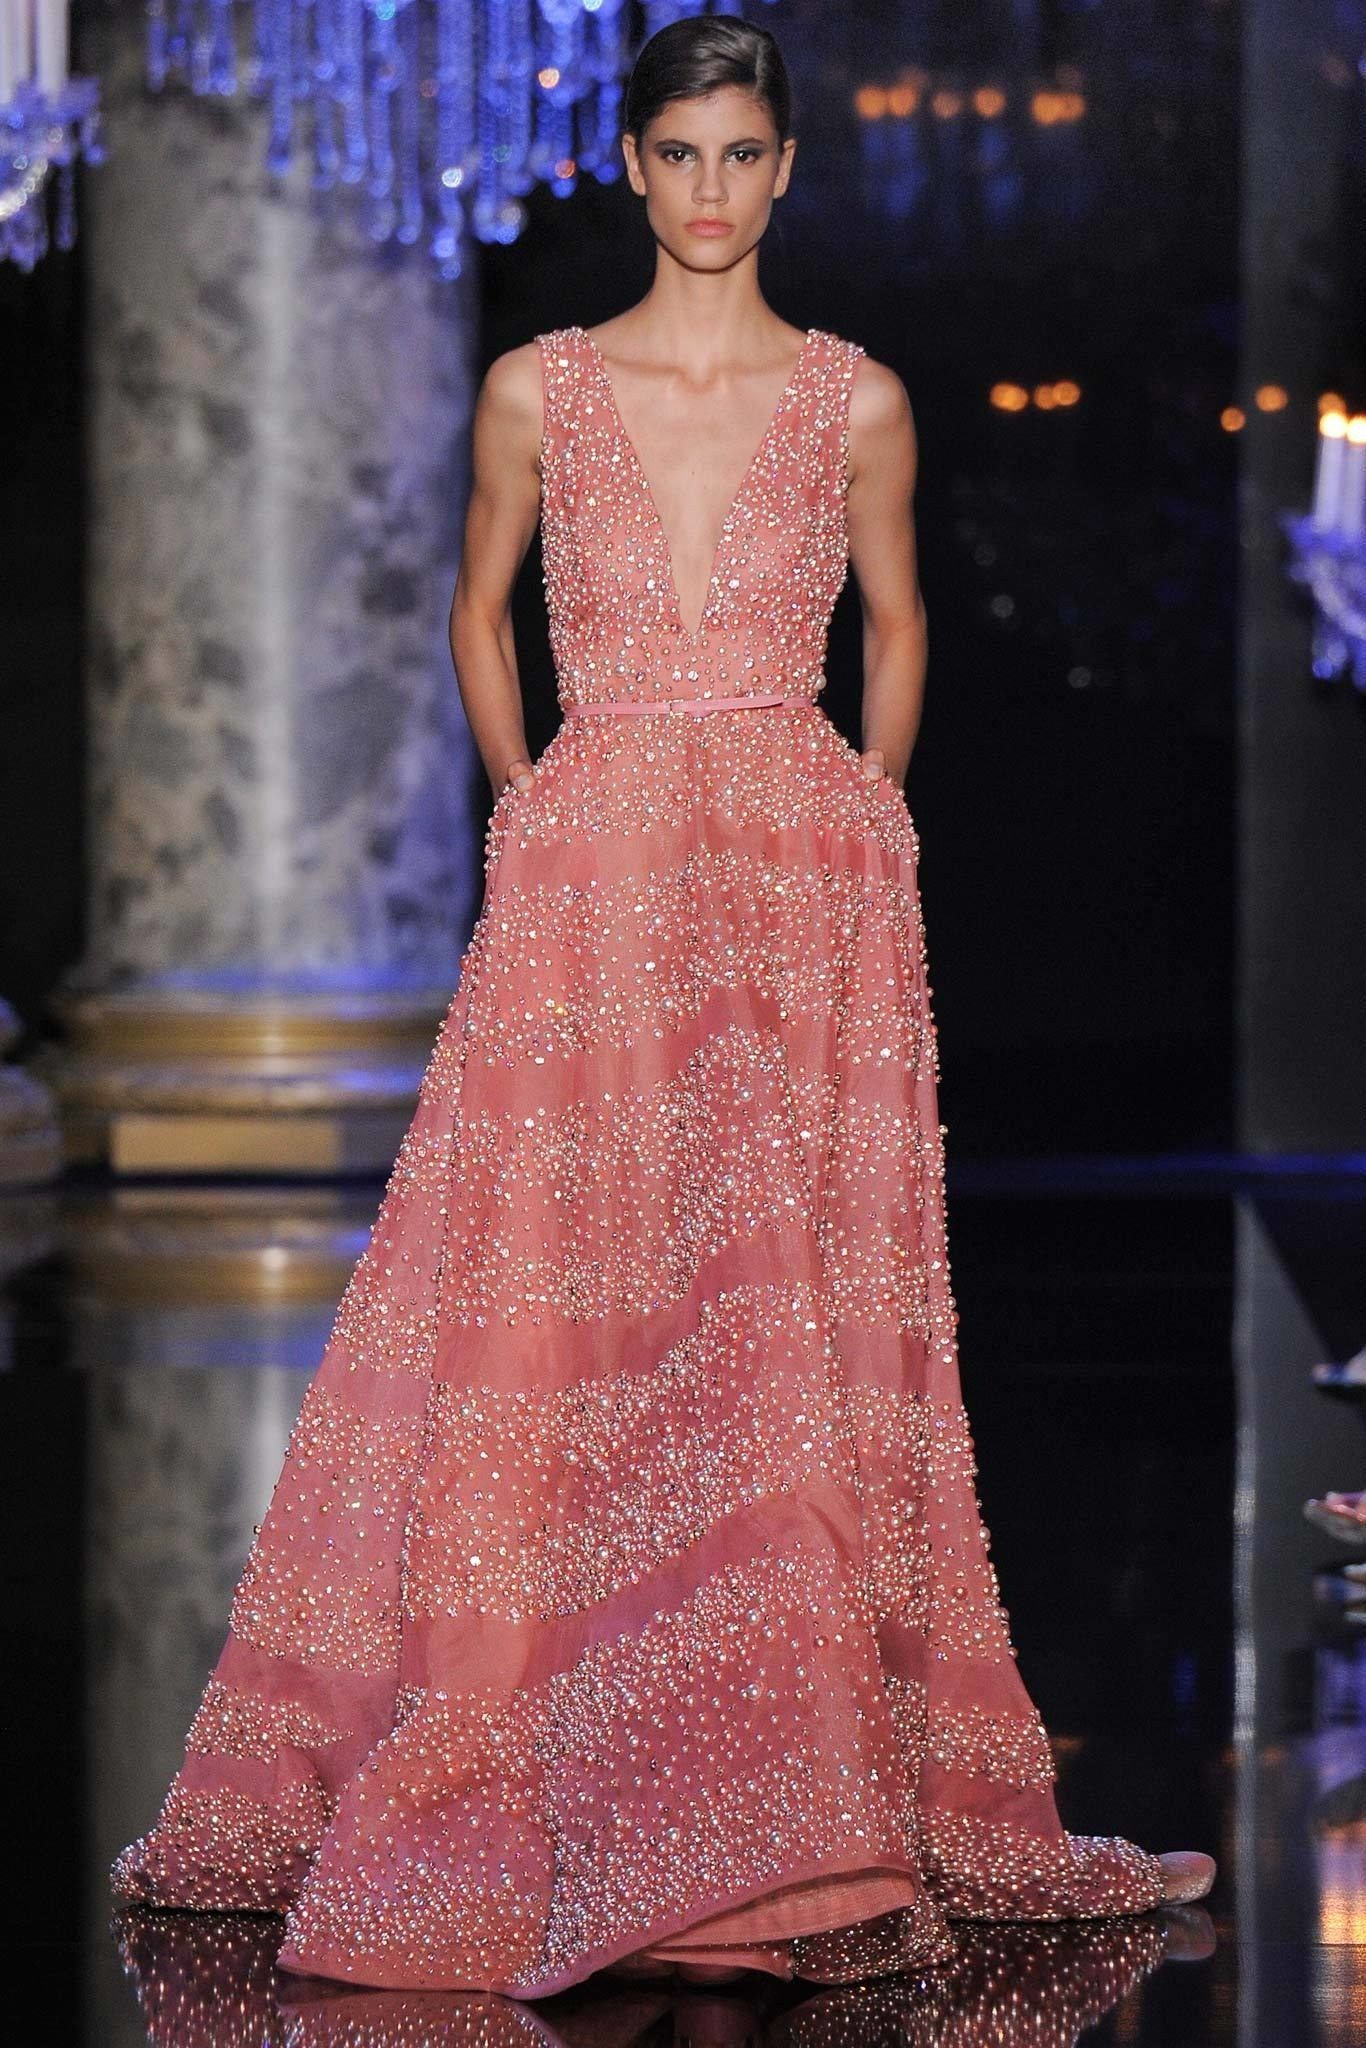 Elie Saab Fall 2014 Couture Fashion Show | Vestiditos, Vestidos de ...